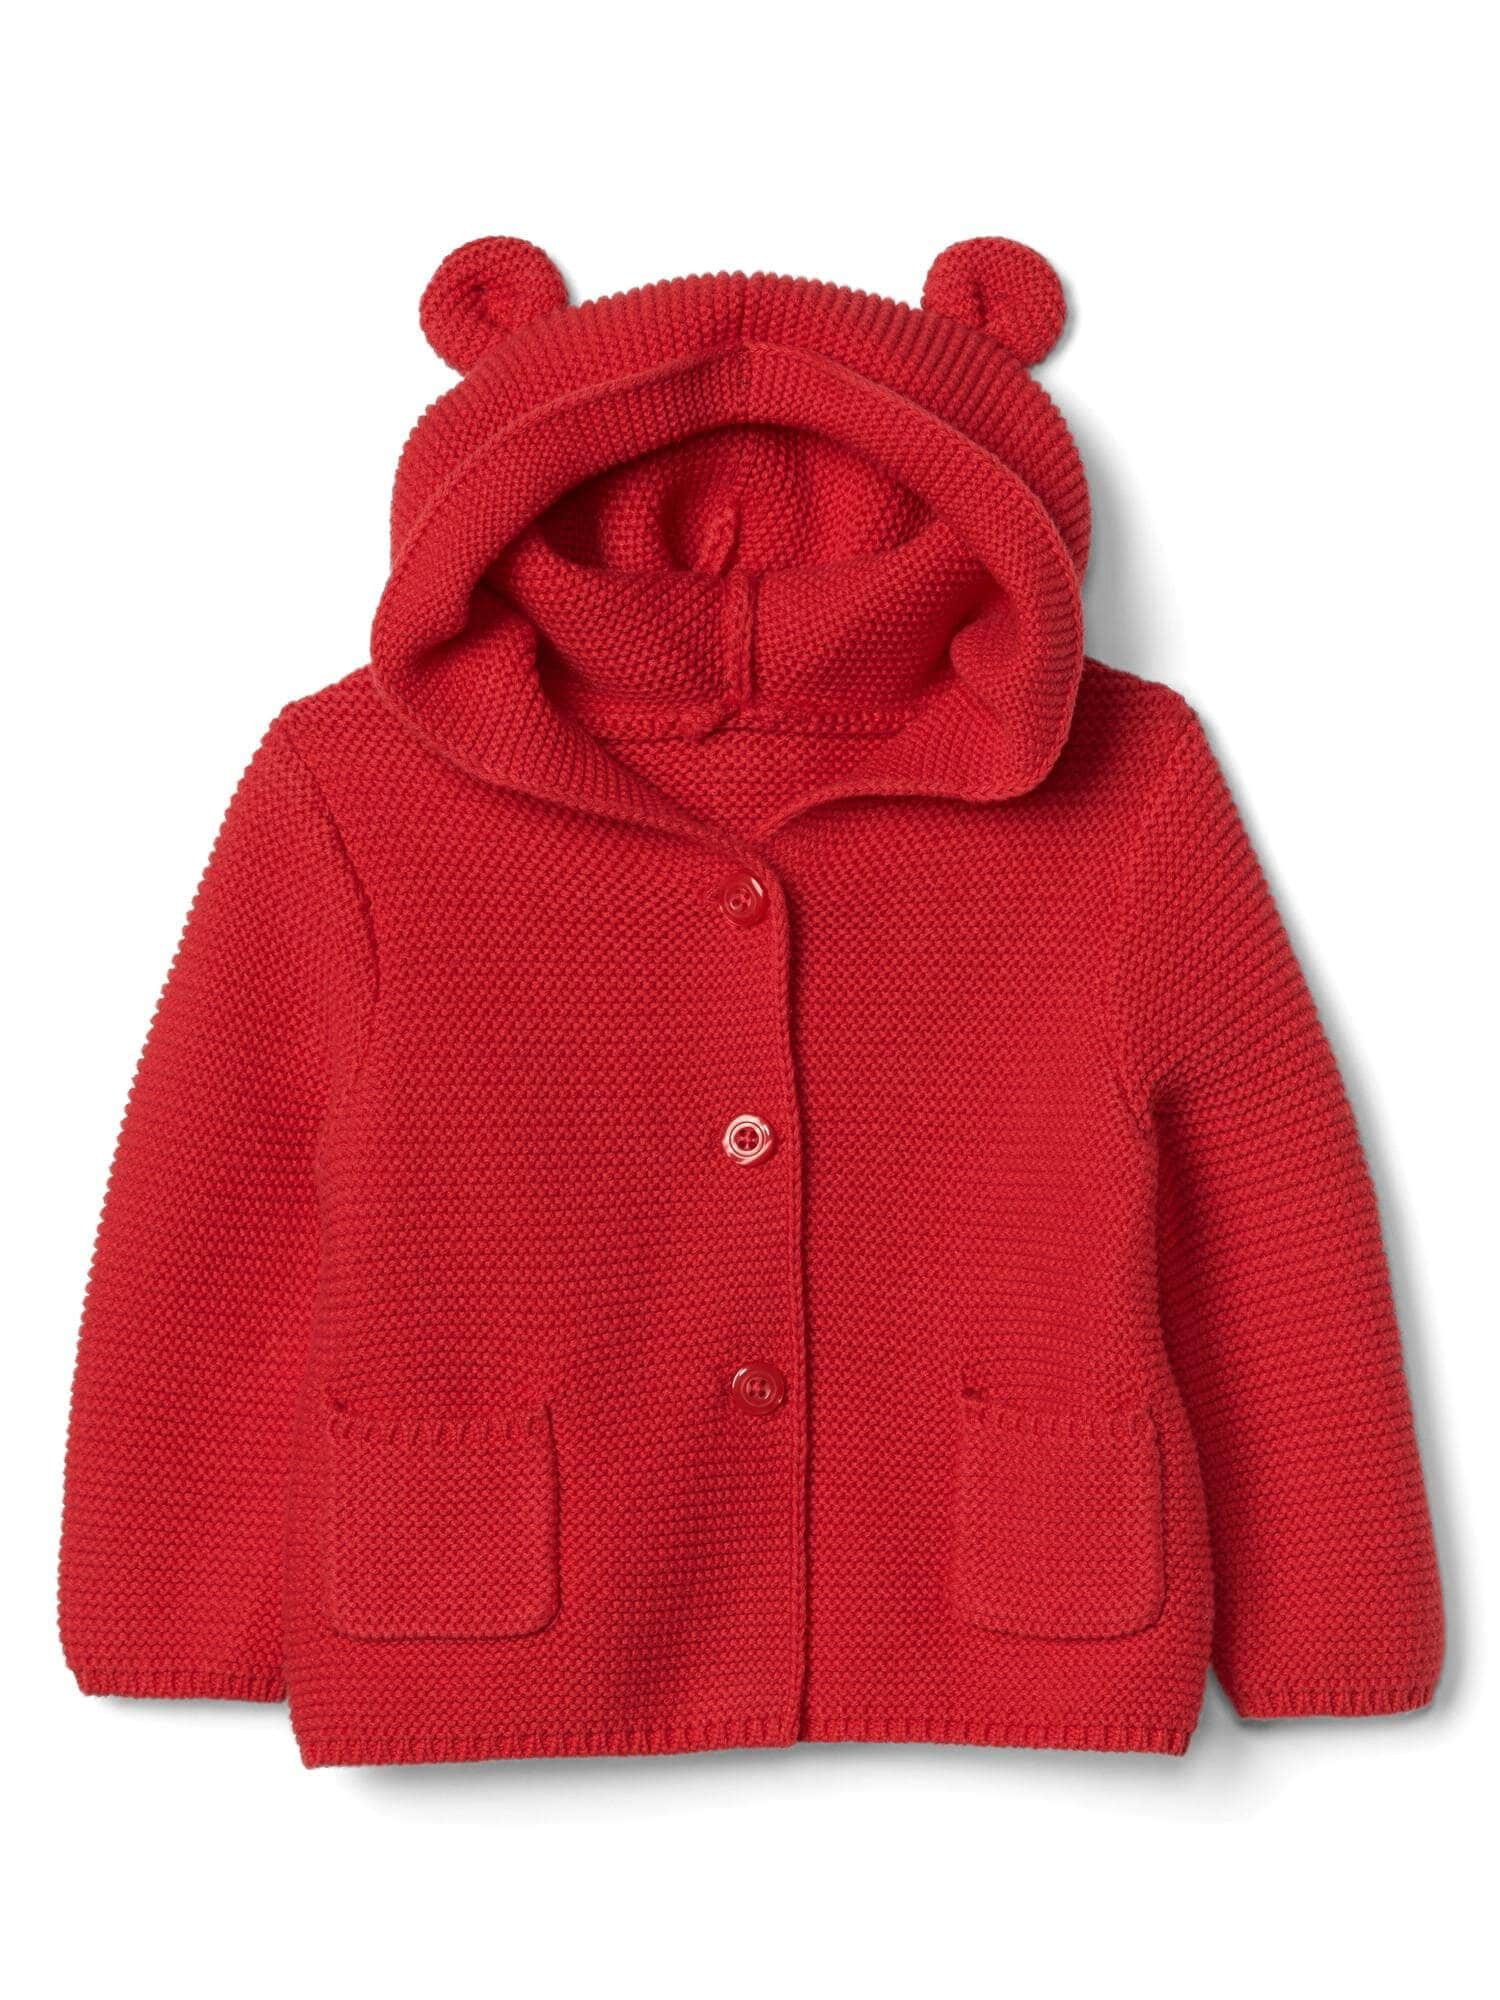 Bear Garter Hoodie Sweater Gap Uk Jaket Jumper Abslt Product Image Is Missing